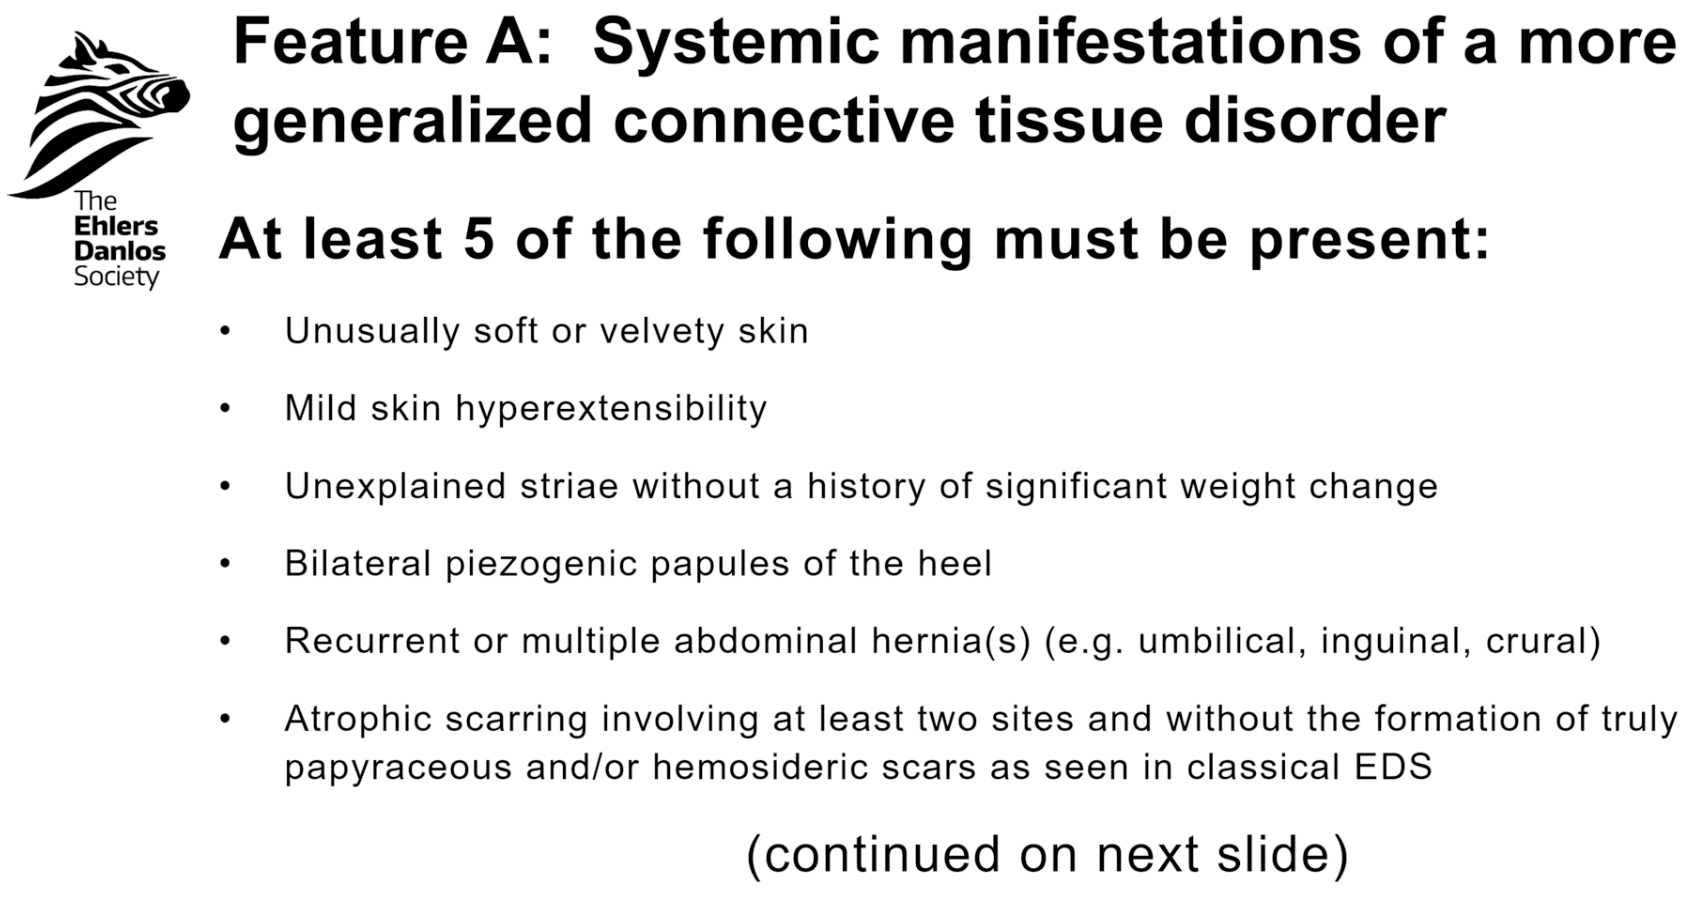 Feature A: Systemic Manifestations